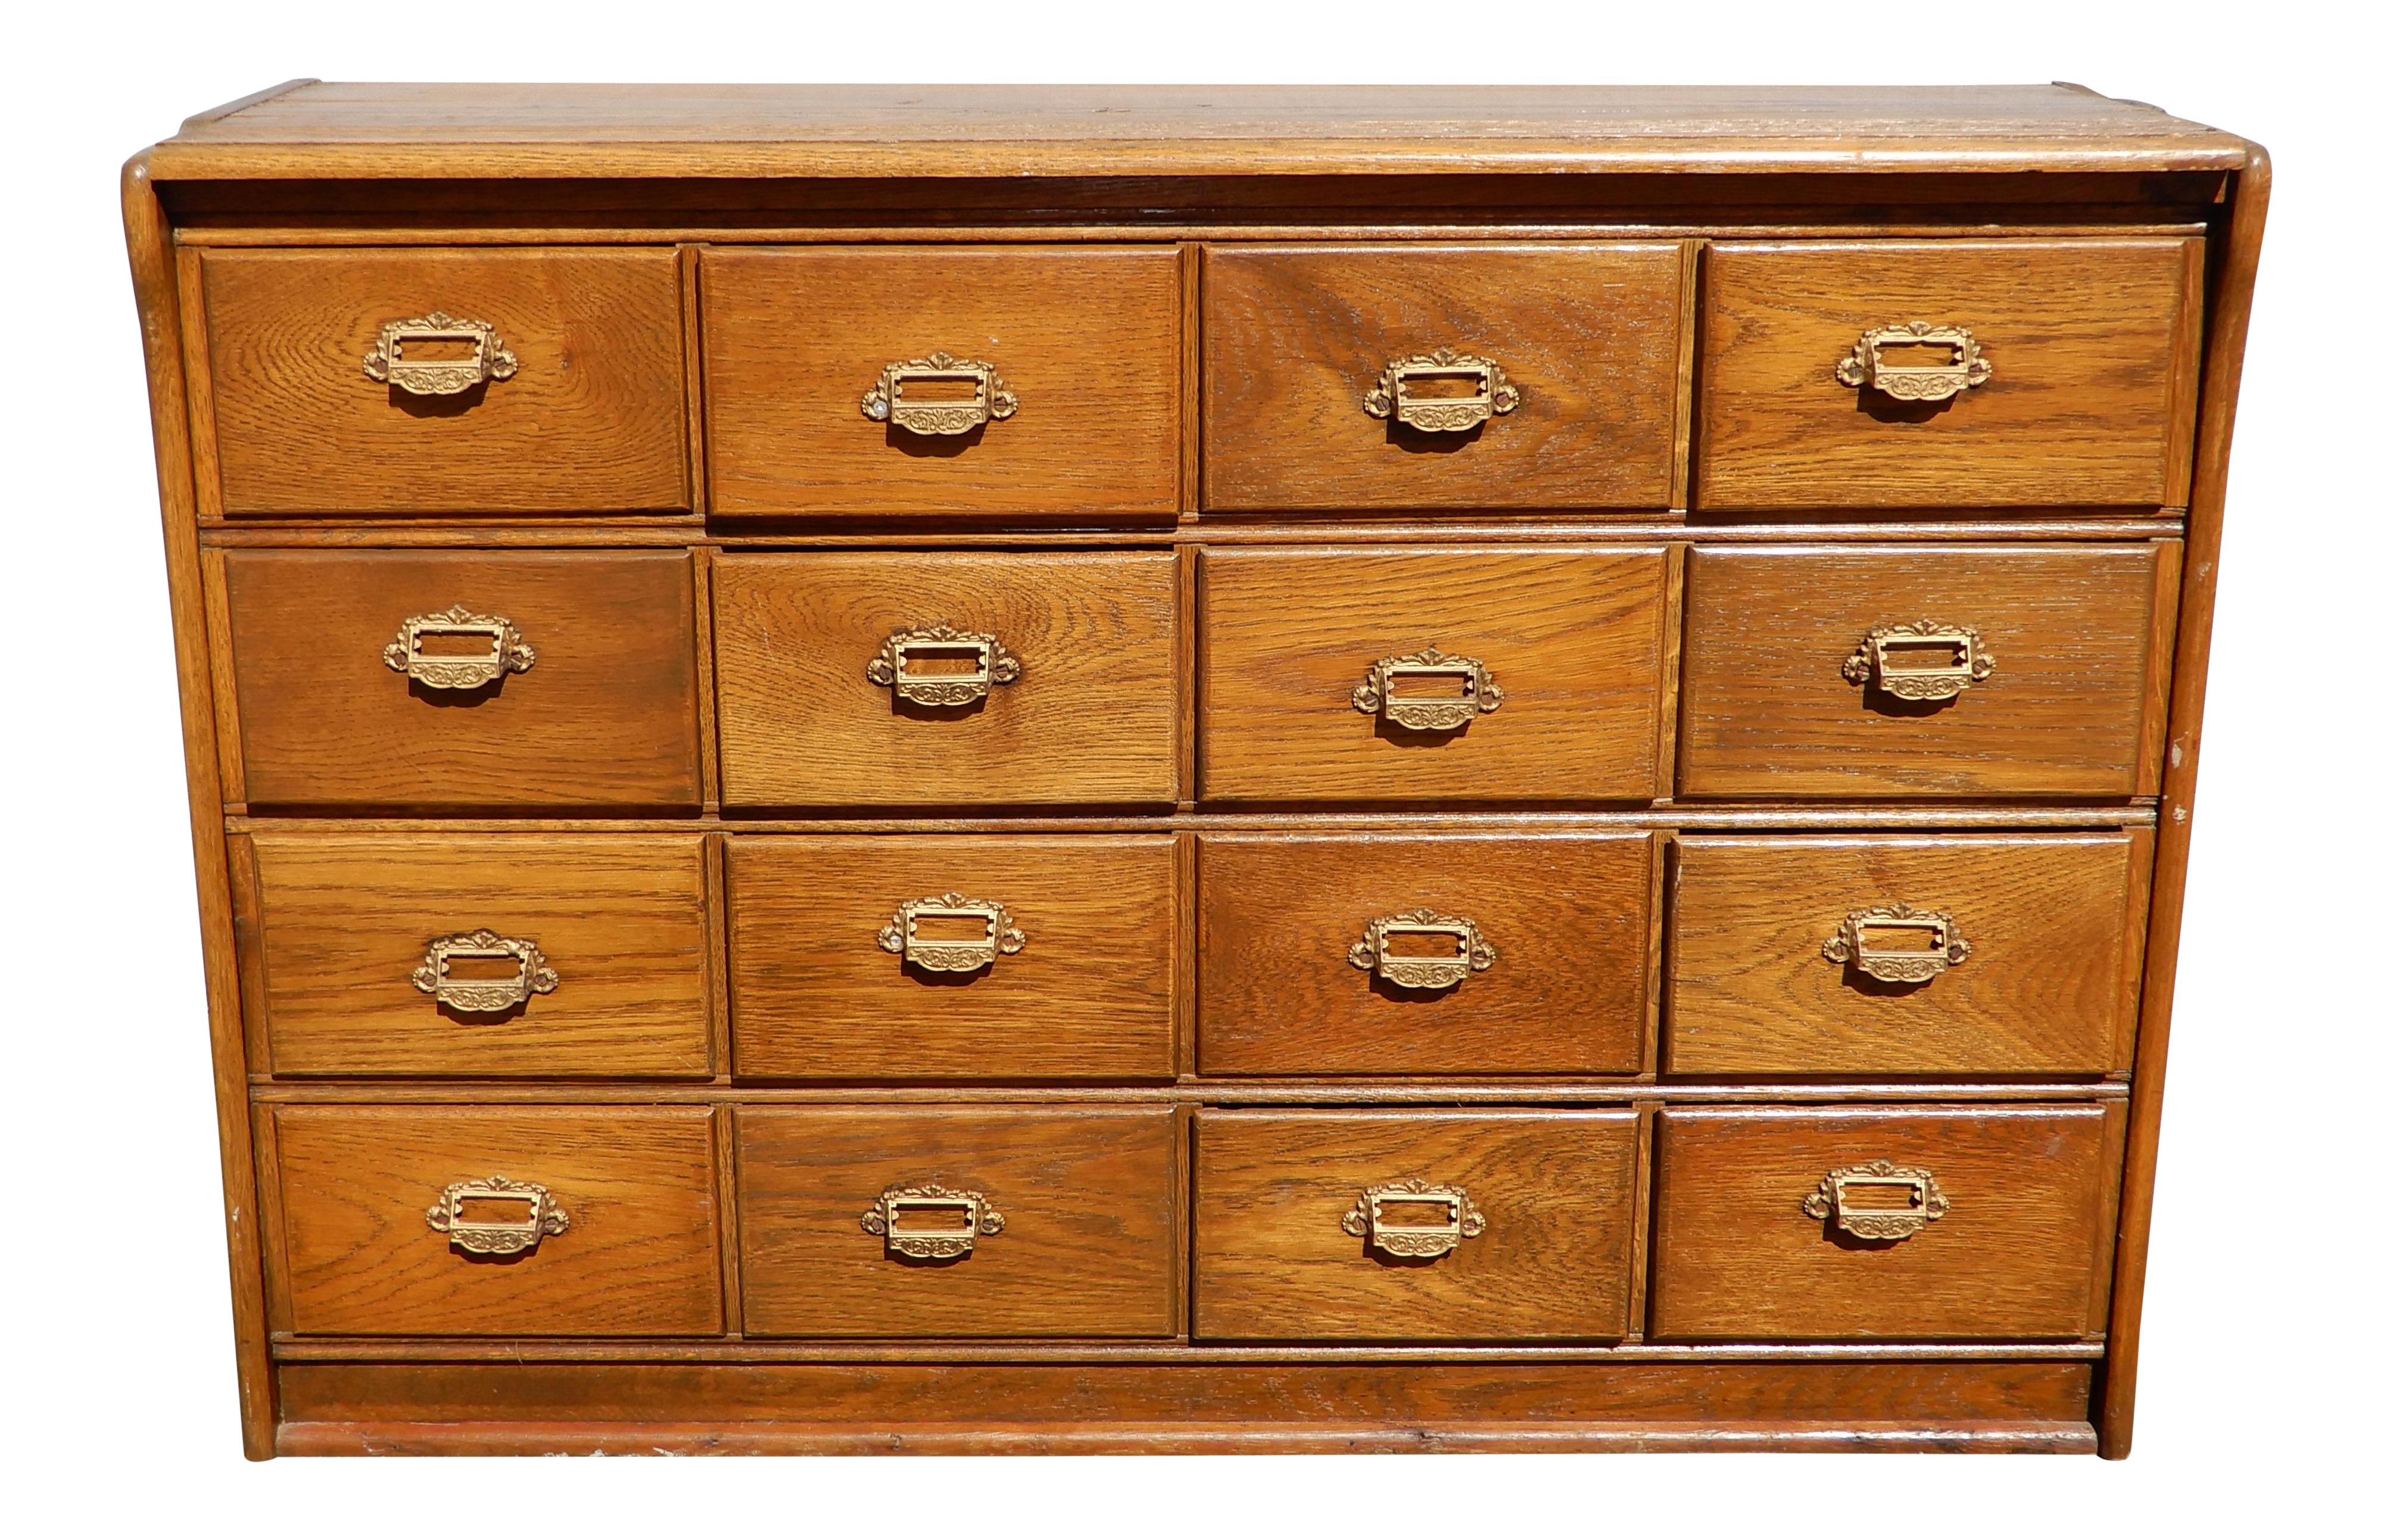 Miraculous Vintage French Country Oak 16 Drawer Apothecary File Cabinet Sideboard Interior Design Ideas Grebswwsoteloinfo